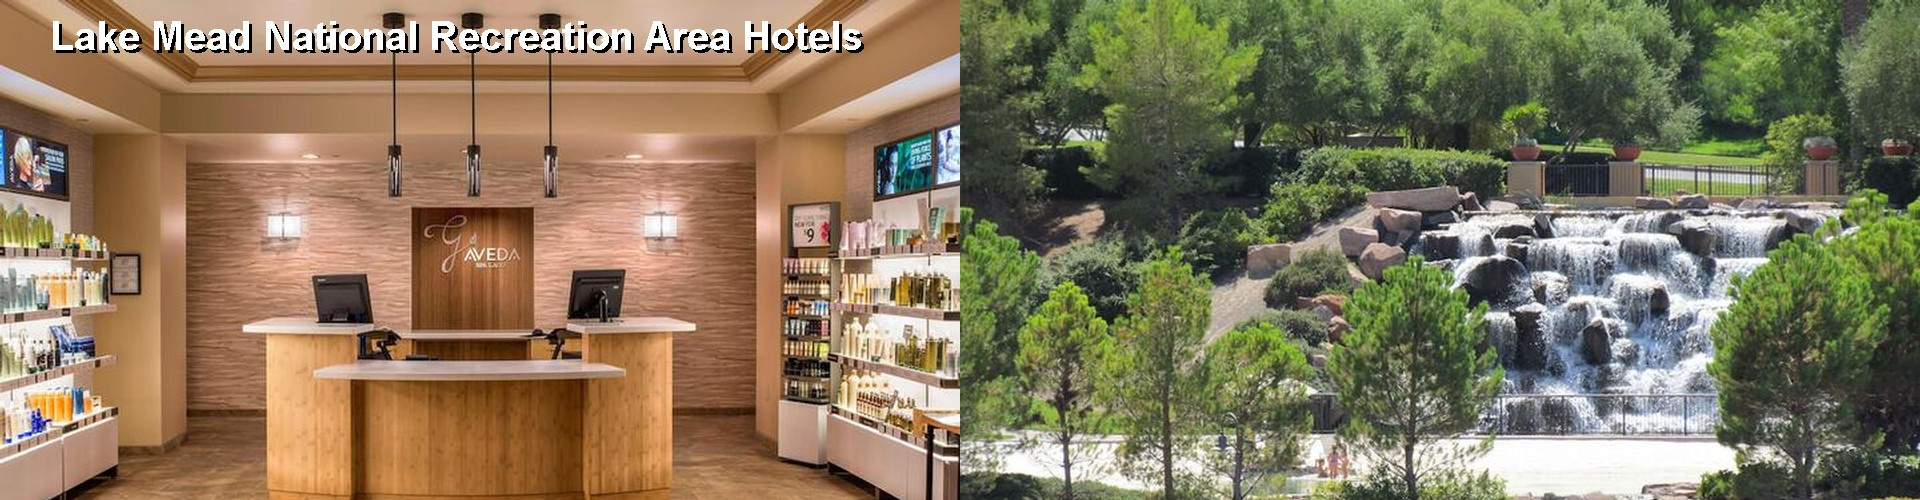 5 Best Hotels near Lake Mead National Recreation Area